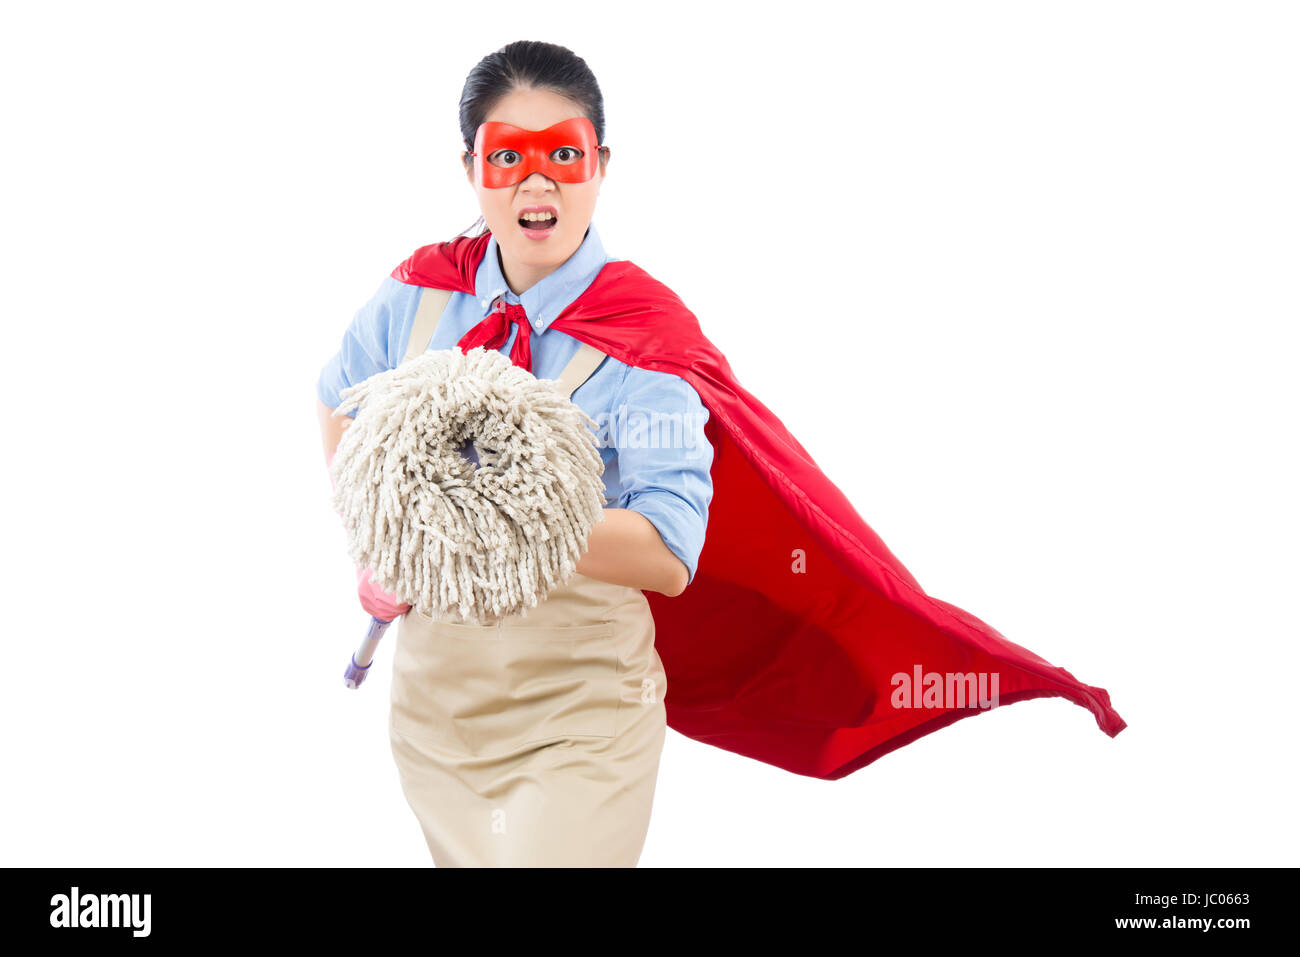 Angry Mad Clean Superhero Face To Camera And Holding Mop Ready To Fight  Doing The Cleaning Job. Isolated On White Background. Housework And  Household